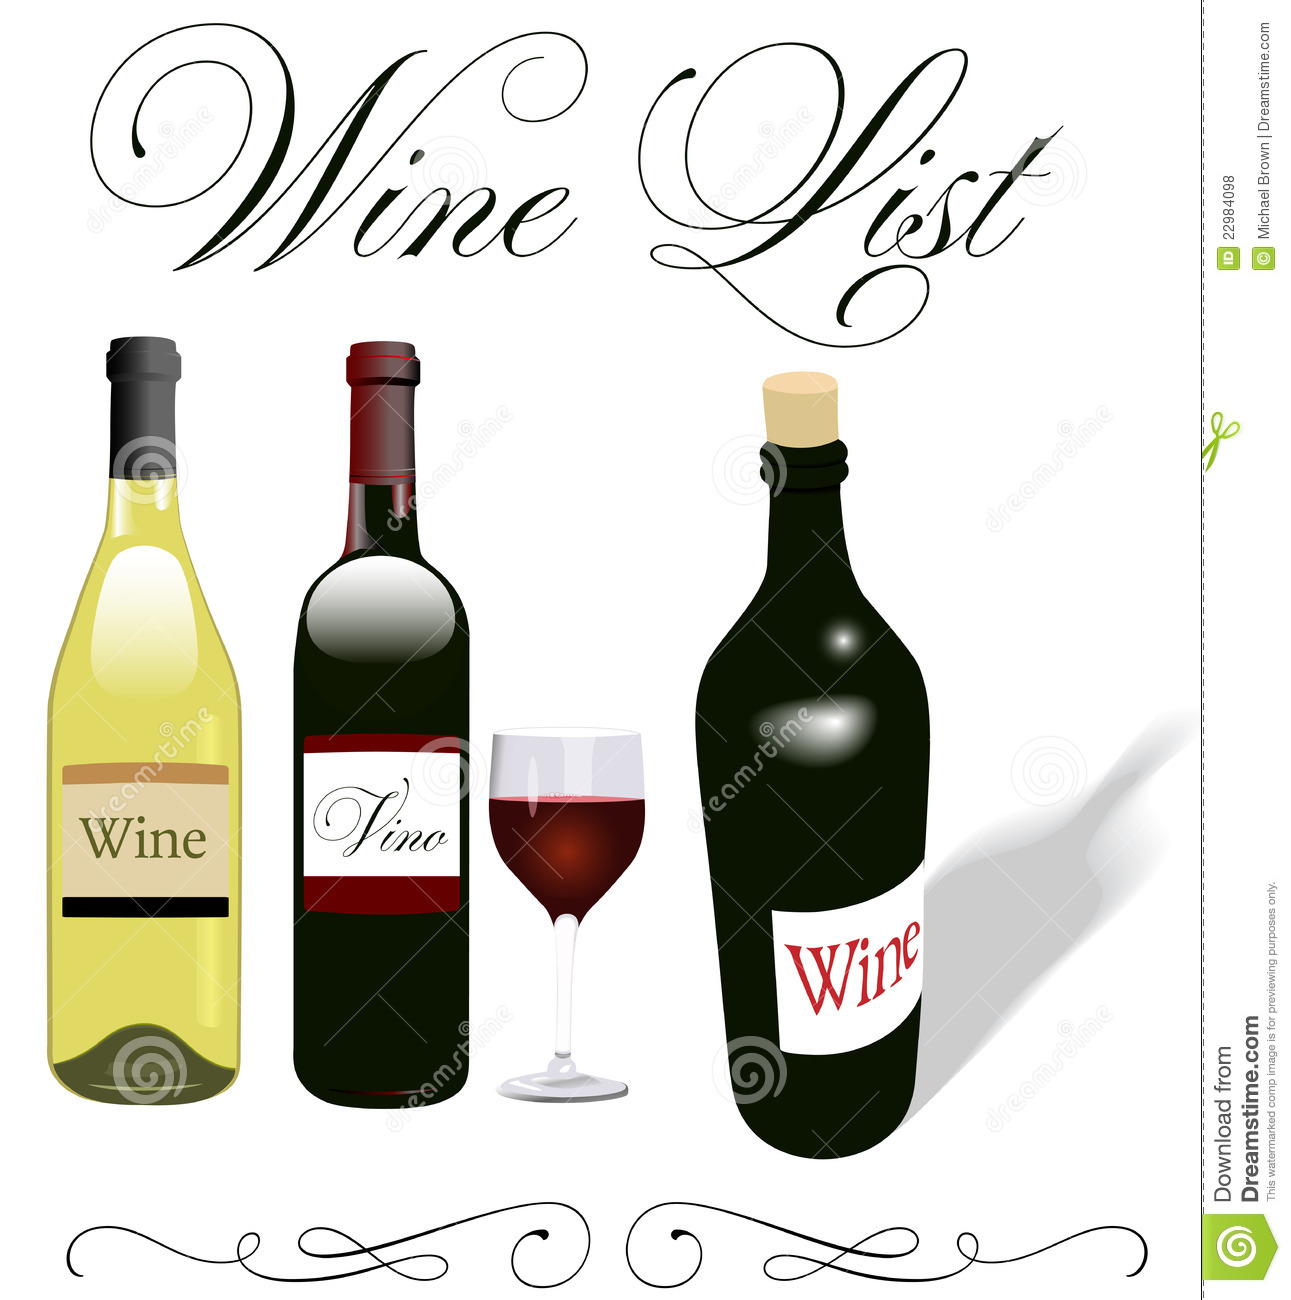 Wine List Menu Bottles Glass Design Royalty Free Stock Photos.